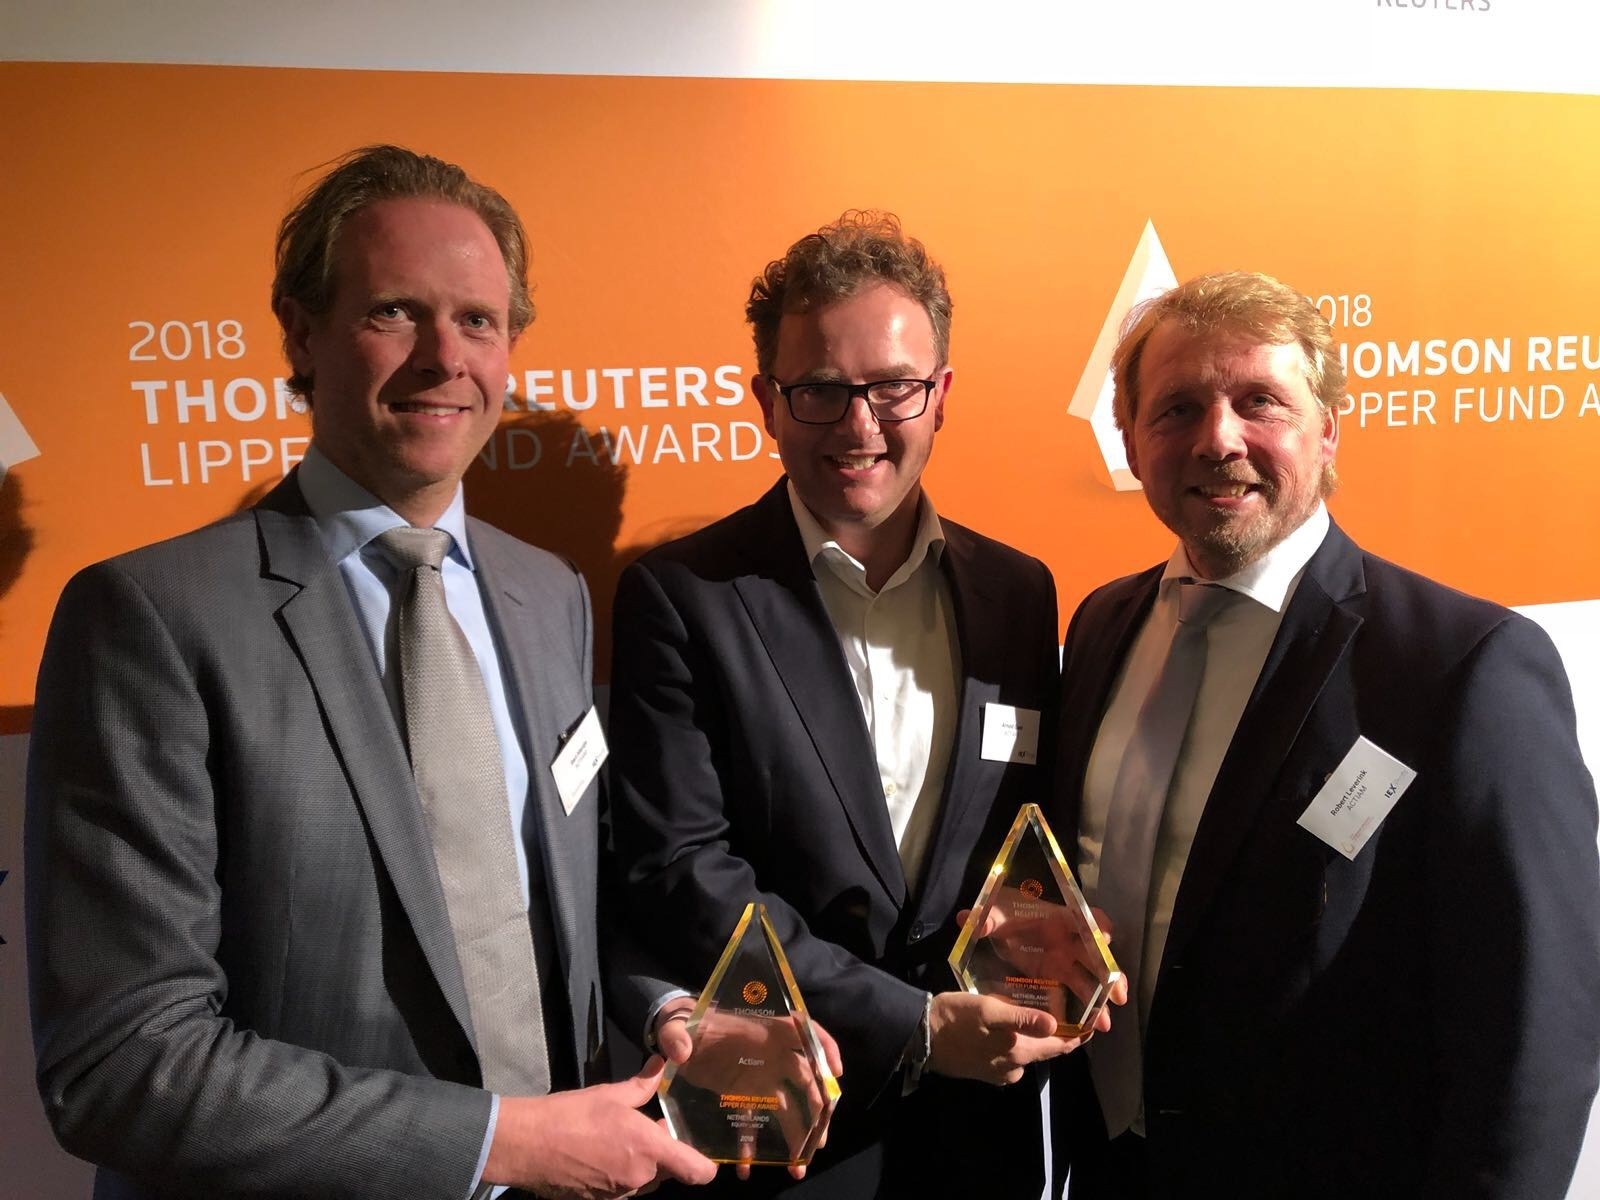 Wederom twee Thomson Reuters Lipper Fund Awards voor ACTIAM Lipper Group Awards voor 'Equity Large' en 'Mixed Assets Large'